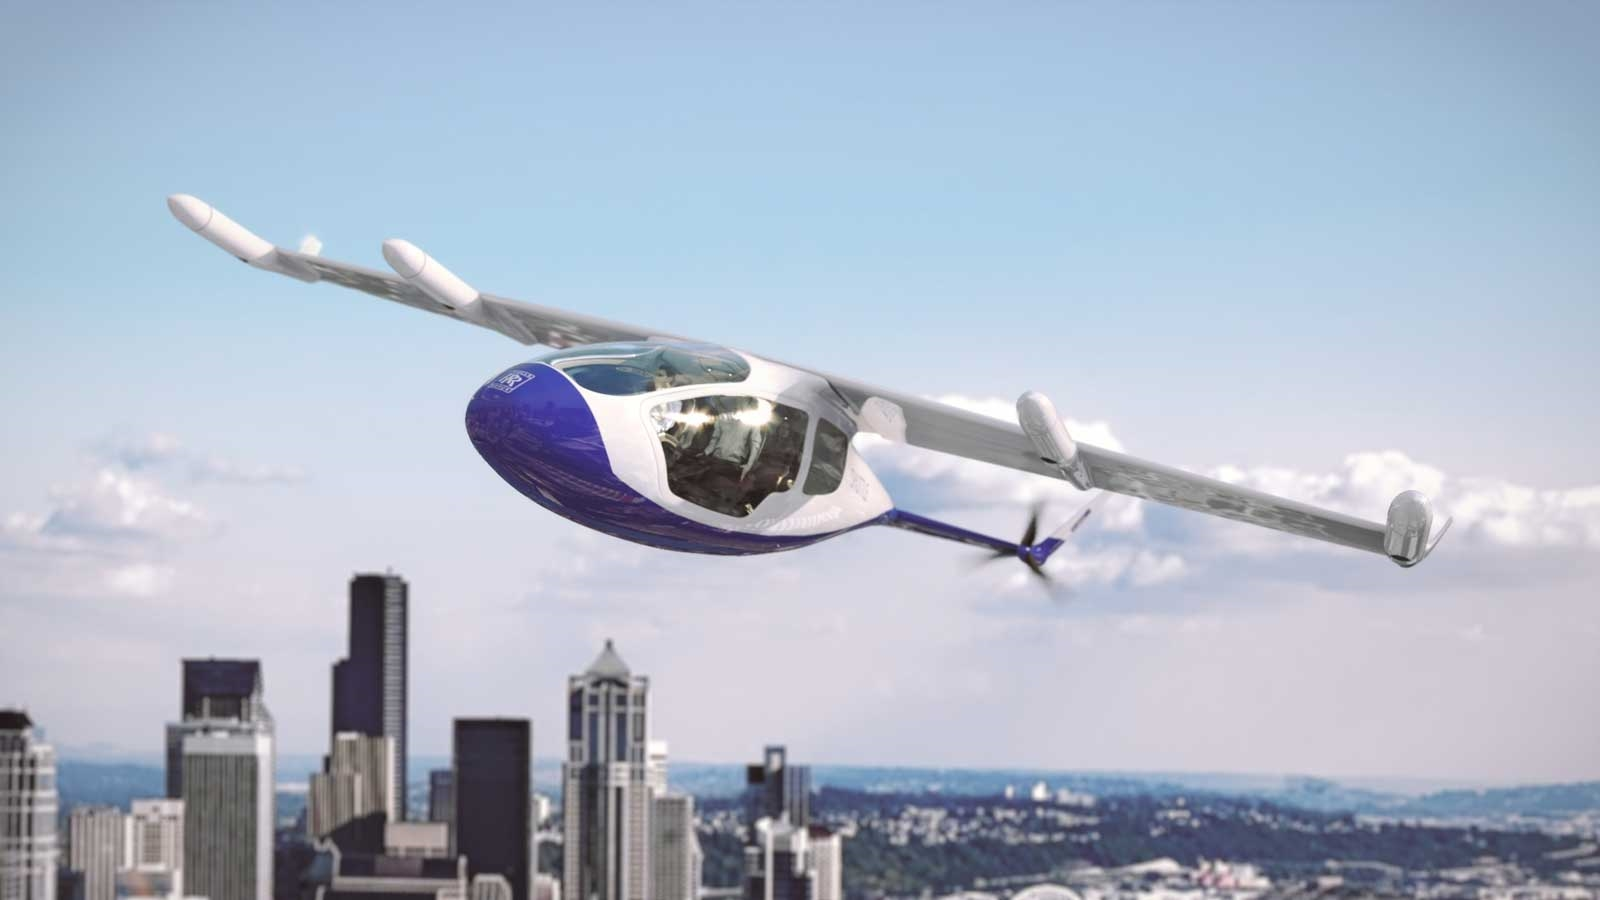 Rolls-Royce is the latest to develop a flying taxi | DeviceDaily.com